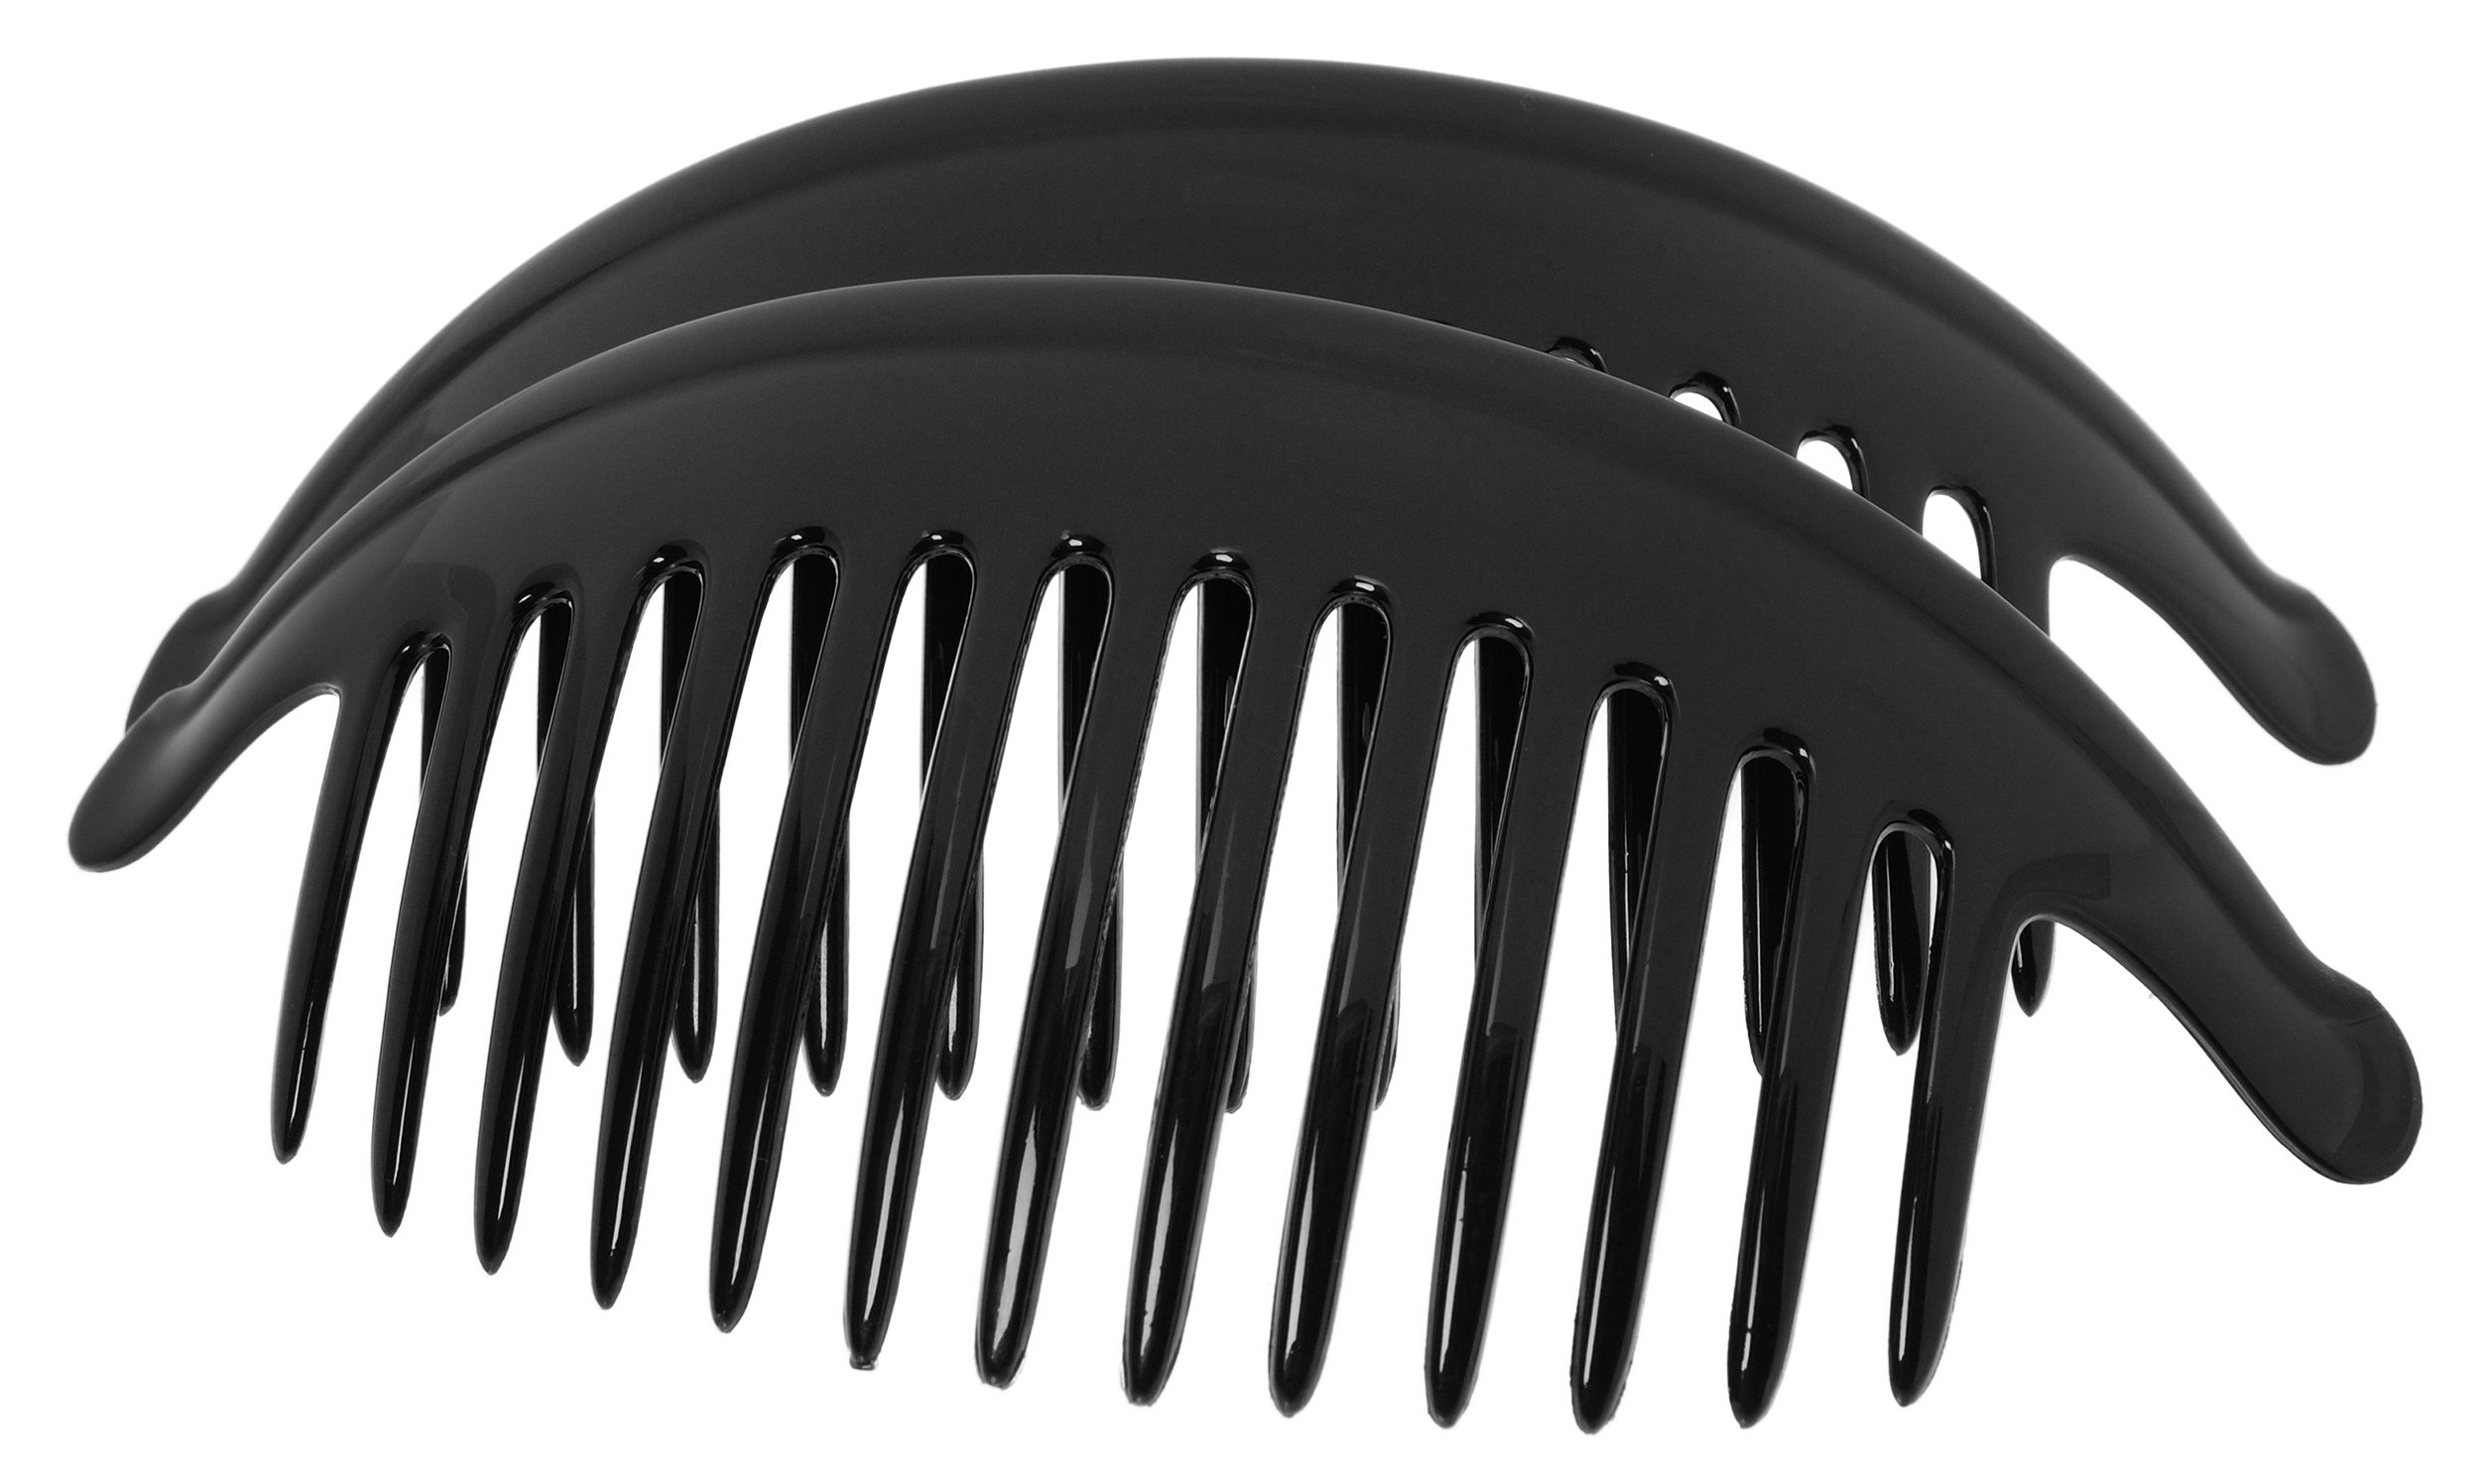 France Luxe Belle Large Interlocking Comb, Black, Set of 2 - An Excellent Styling Solution For Long/Thick or Curly Hair by France Luxe